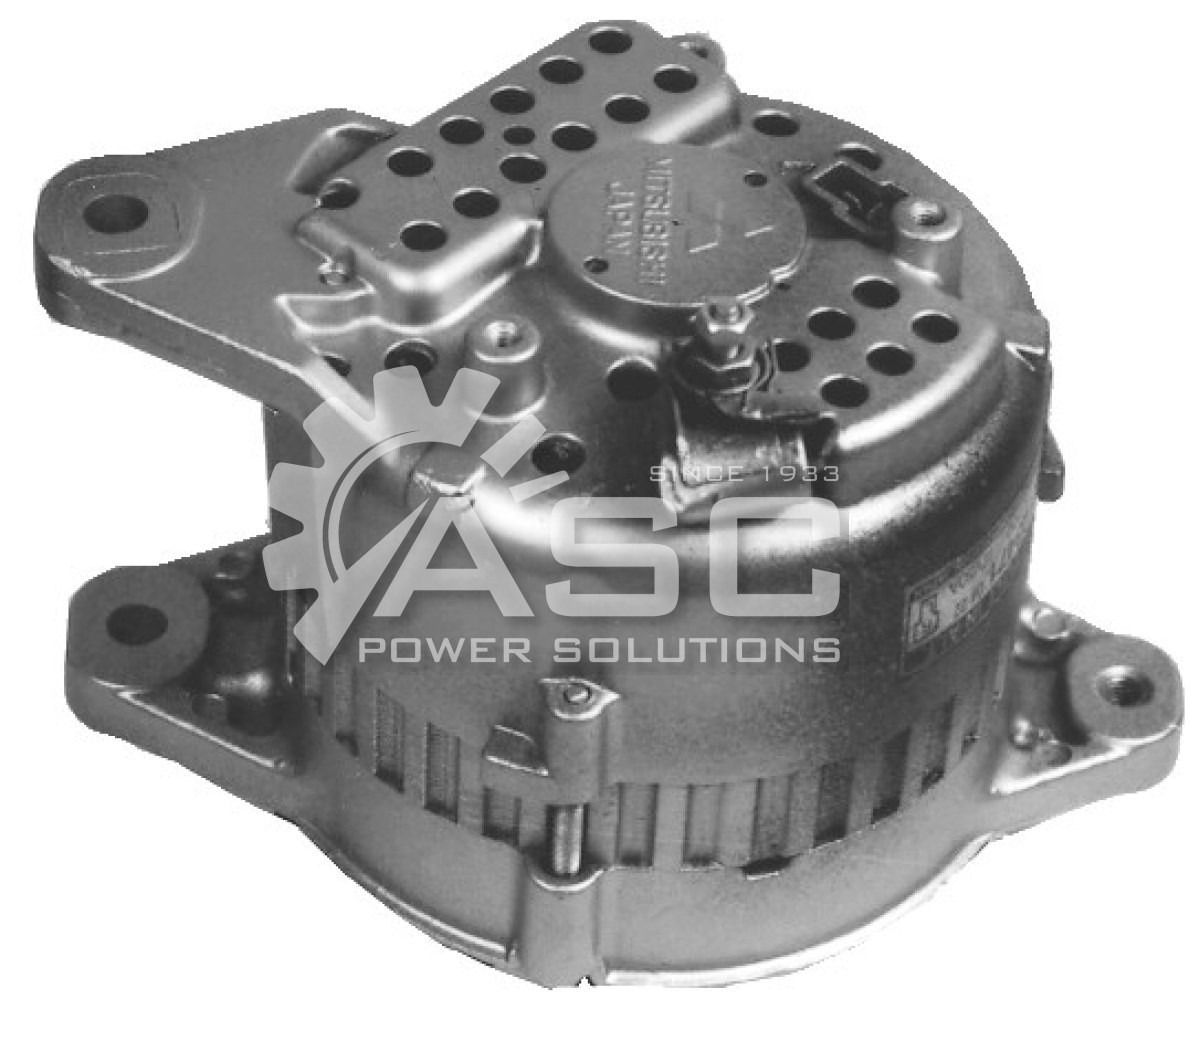 A481025_ASC, Alternator, 12V, 50 Amp, IR, EF, CW, V1, 62MM, Mitsubishi, Reman